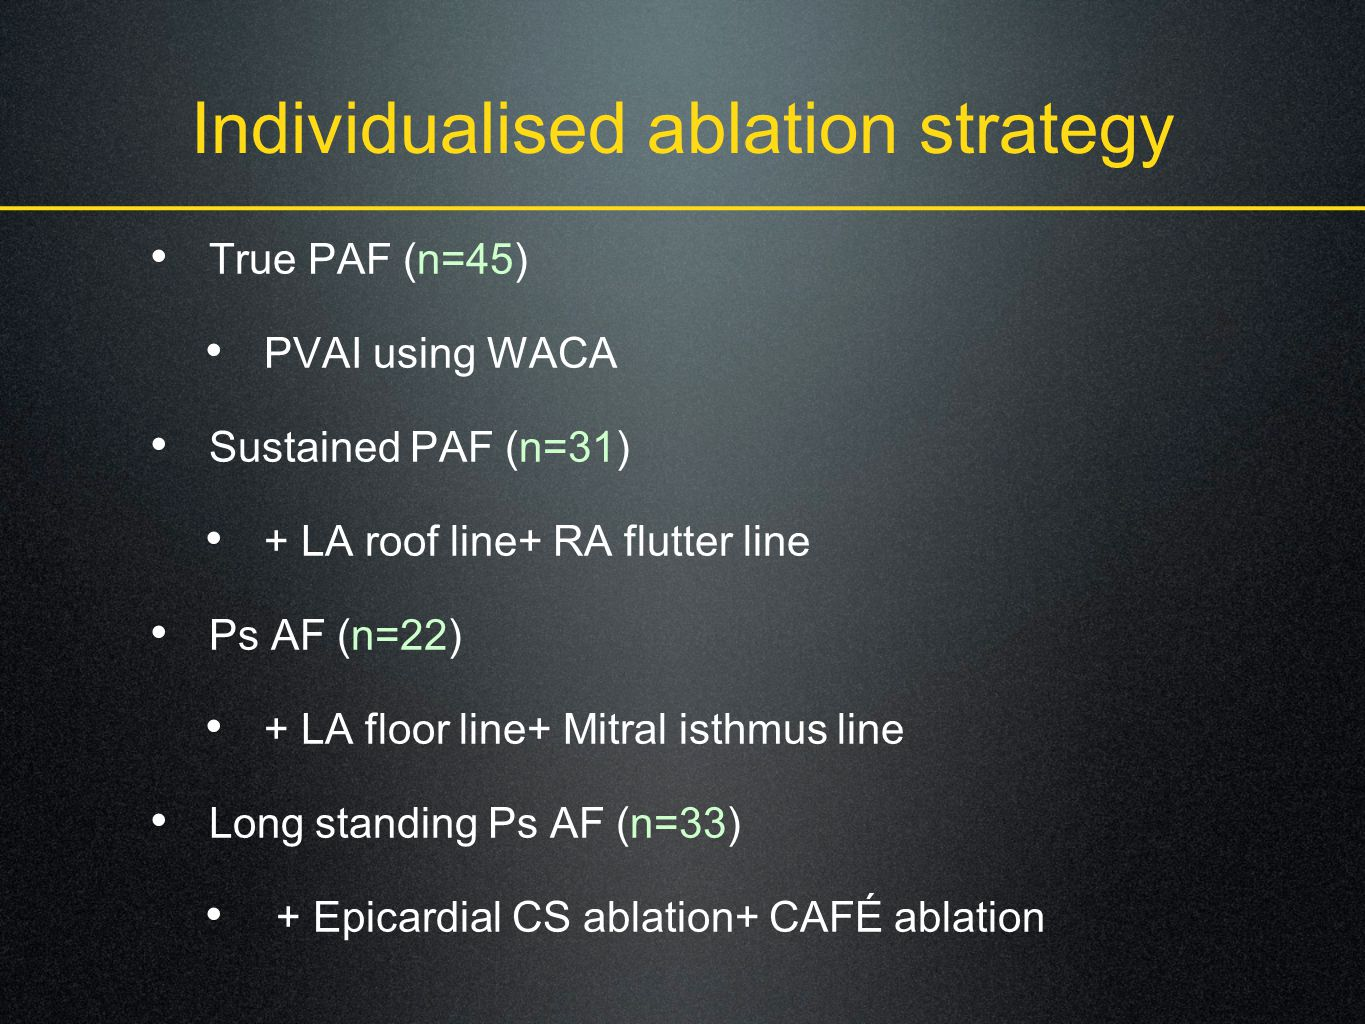 Individualised ablation strategy